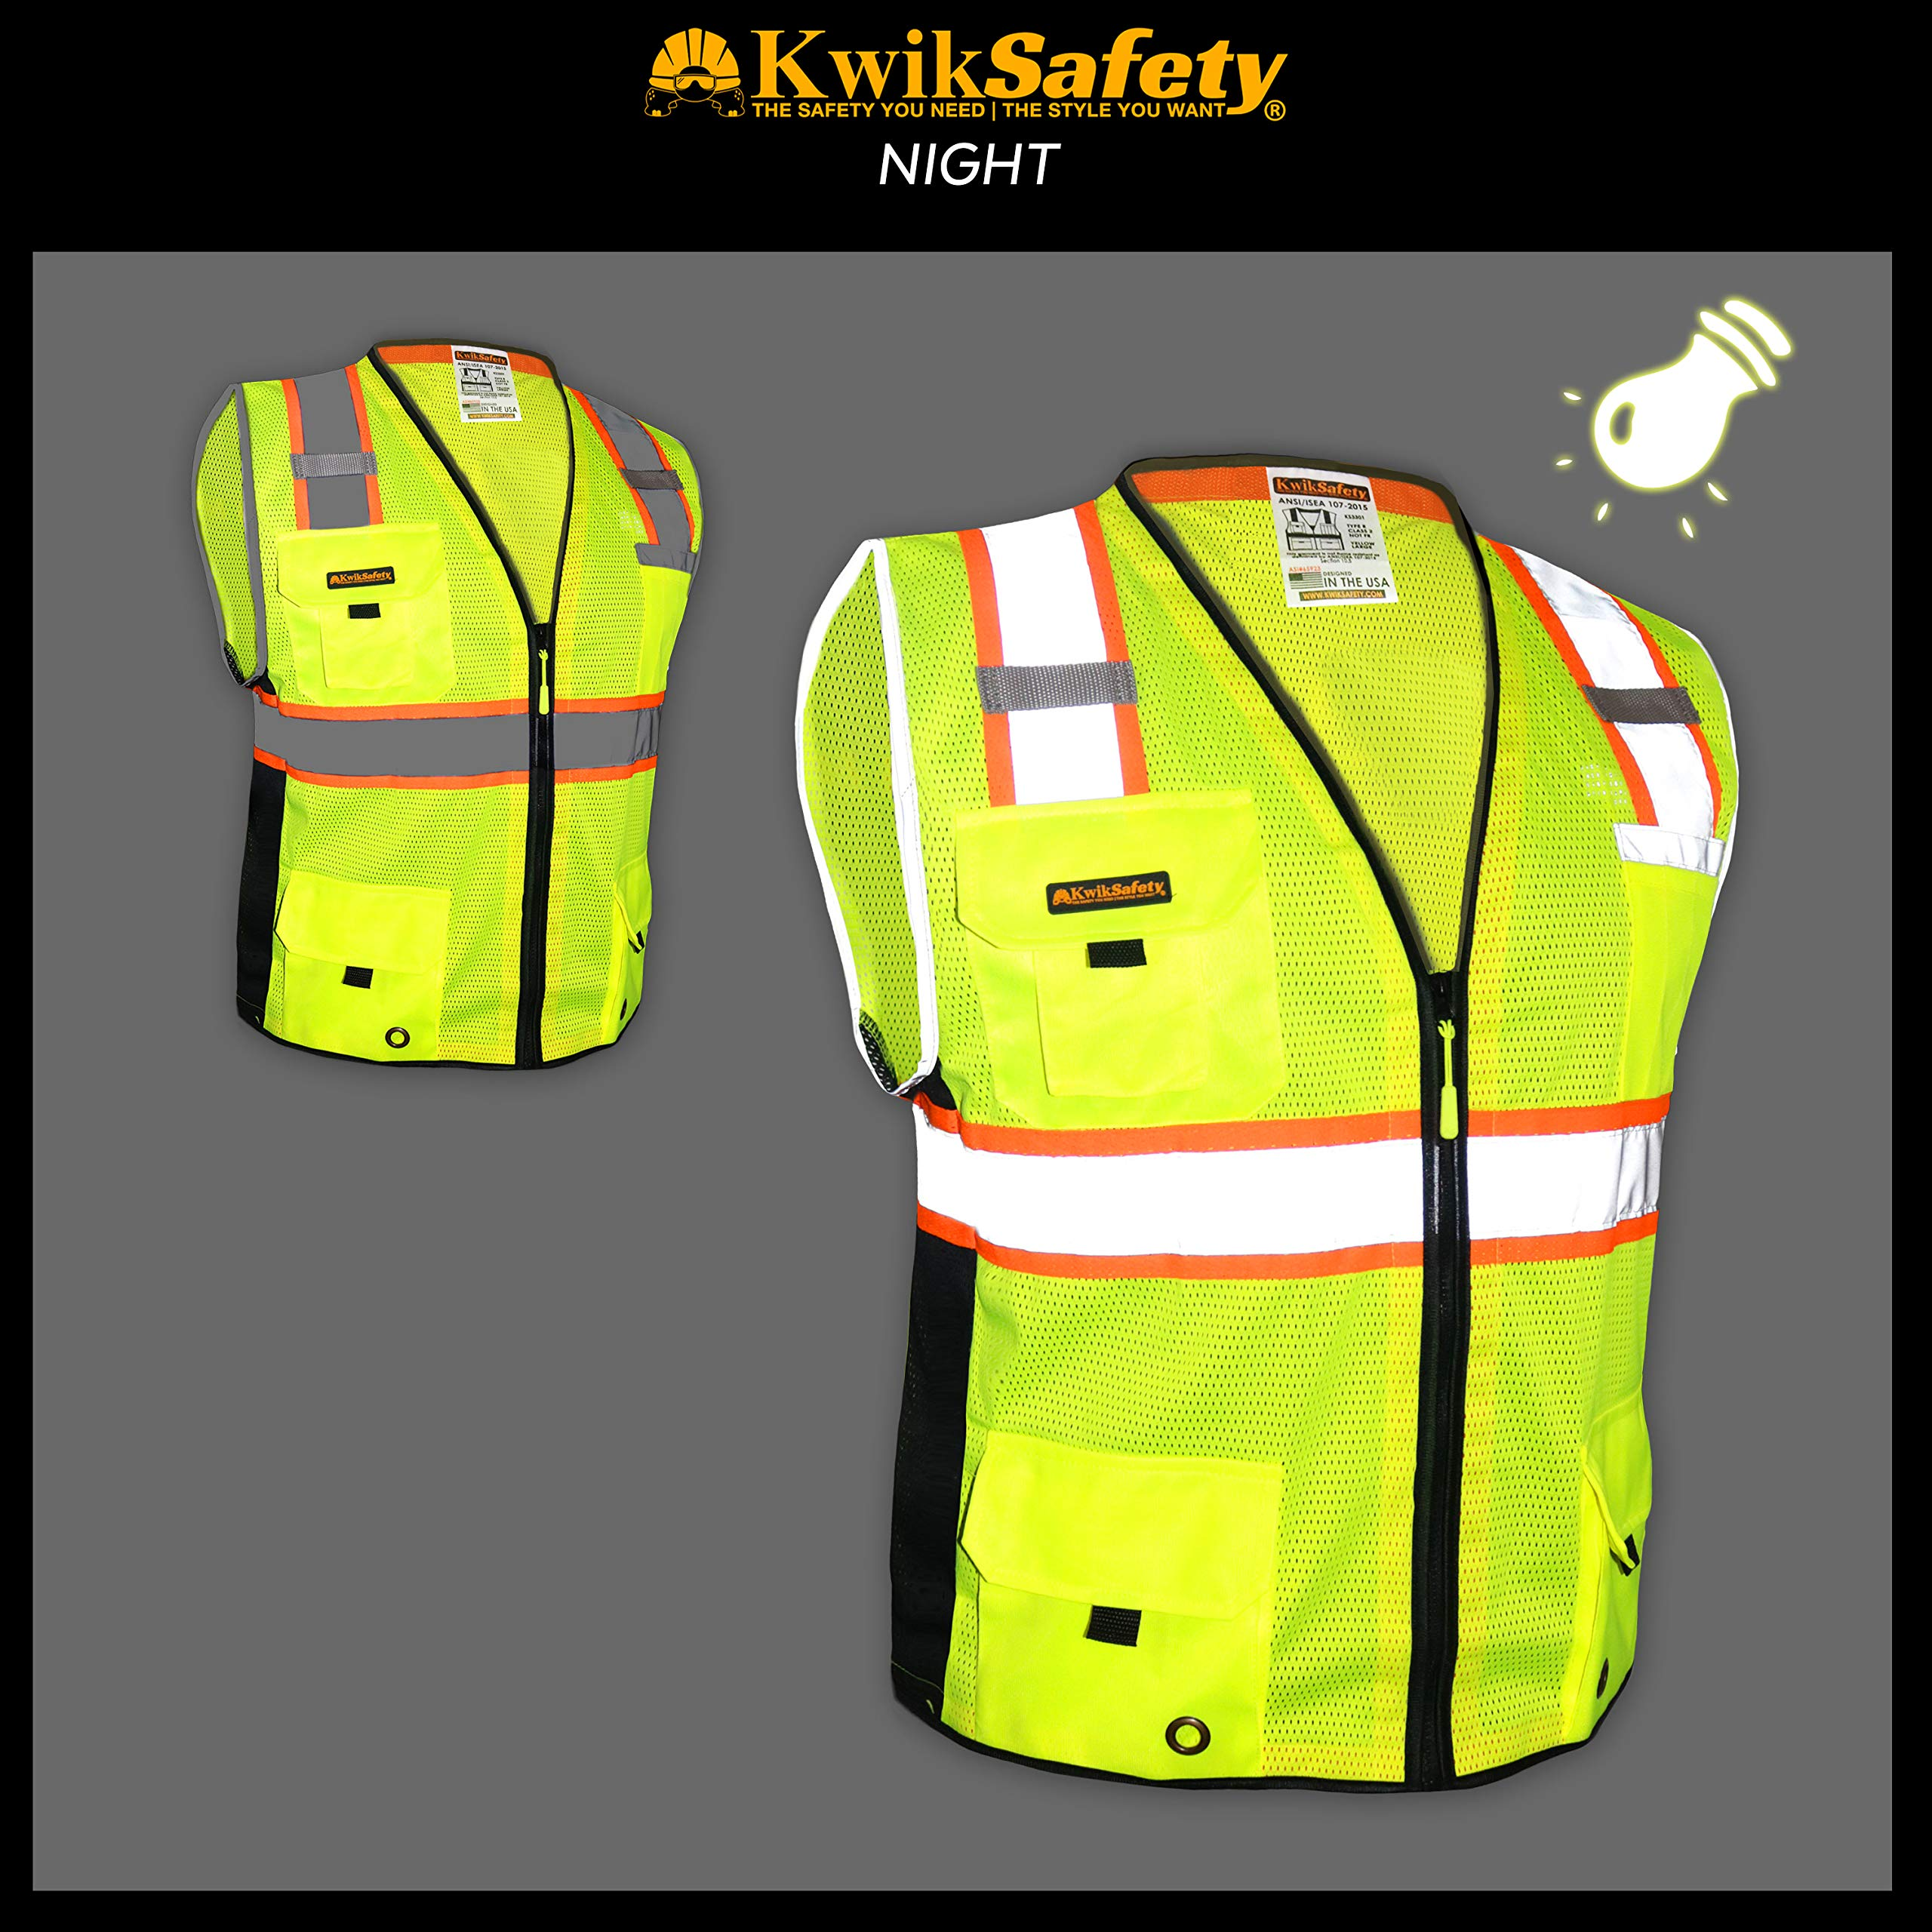 KwikSafety (Charlotte, NC) BIG KAHUNA (11 Pockets) Class 2 ANSI High Visibility Reflective Safety Vest Heavy Duty Mesh with Zipper and HiVis for OSHA Construction Work HiViz Men Yellow Black Small by KwikSafety (Image #3)